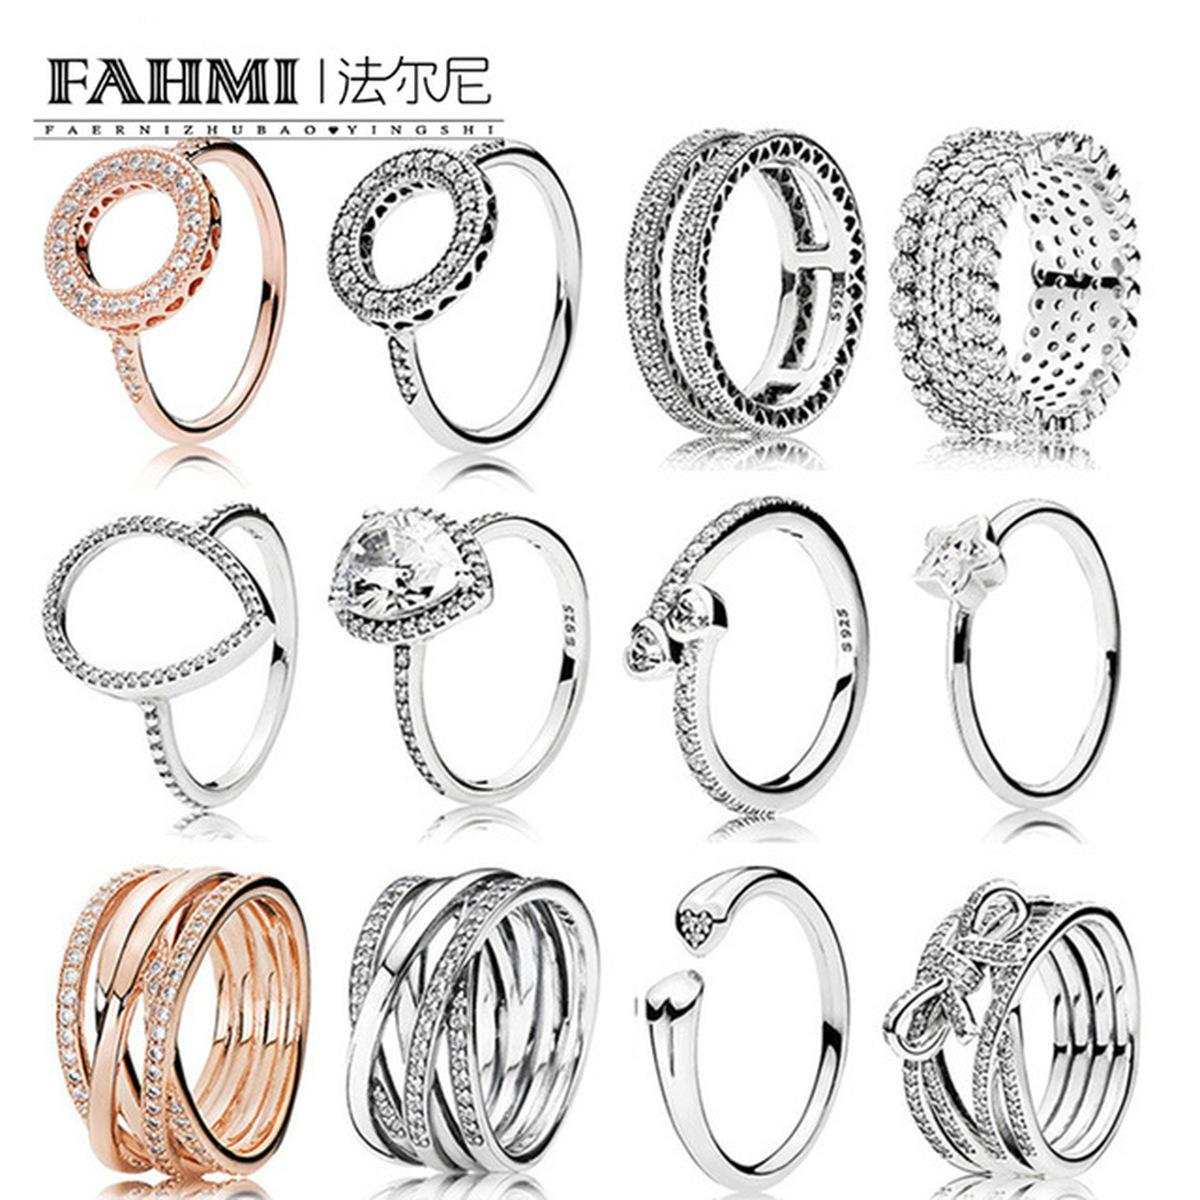 FAHMI 100%925 Sterling Silver Jewelry Original jewelry Zircon Charm Heart-Shaped Water Drops Stars Ring Bow Round Hollow Rose Gold Ring